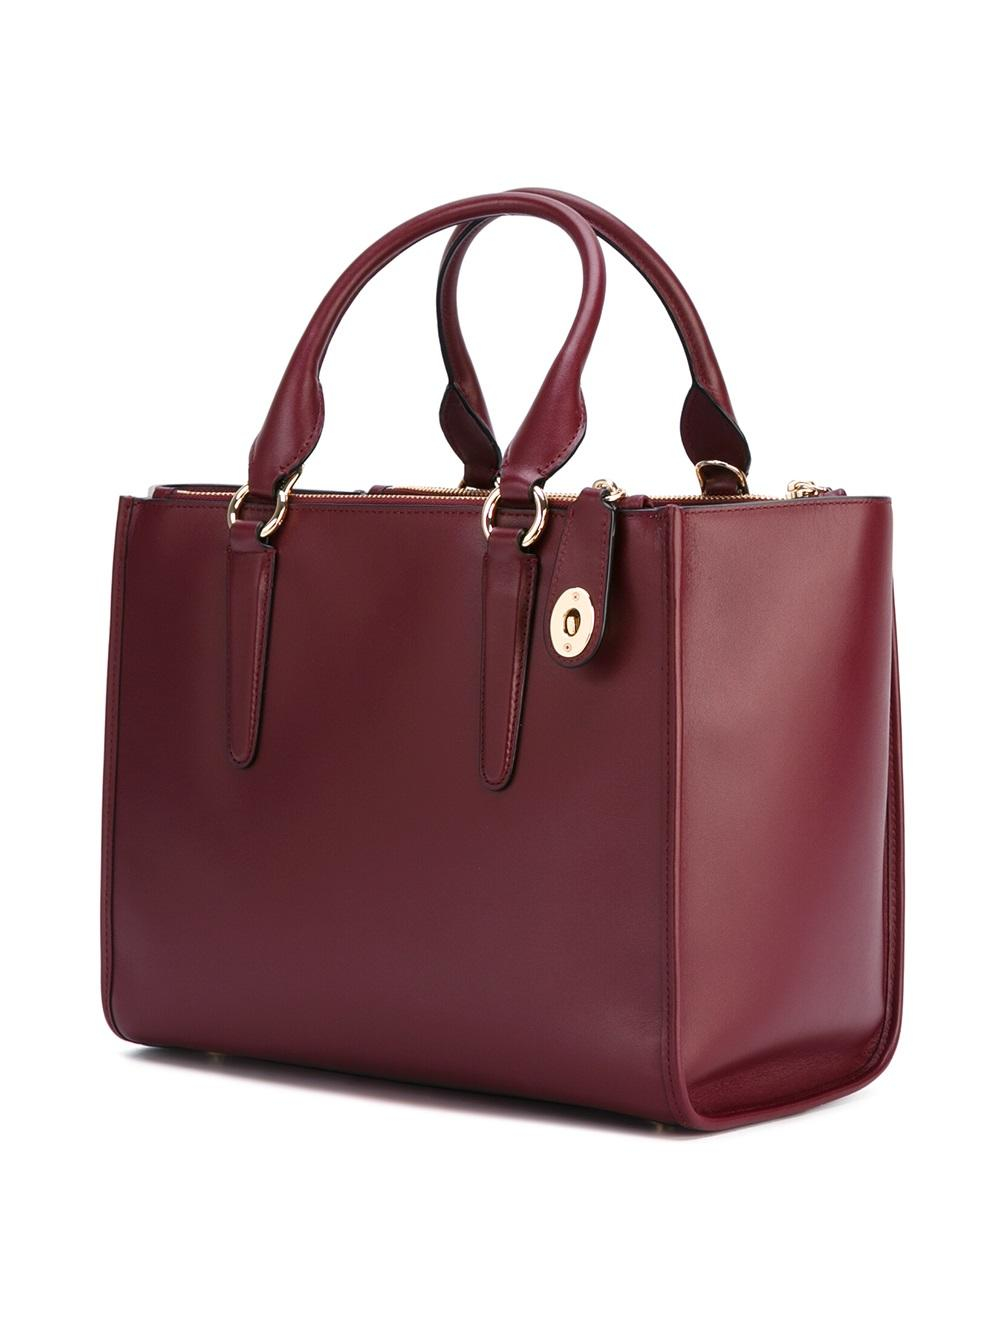 COACH Leather 'crosby Carryall' Tote in Red